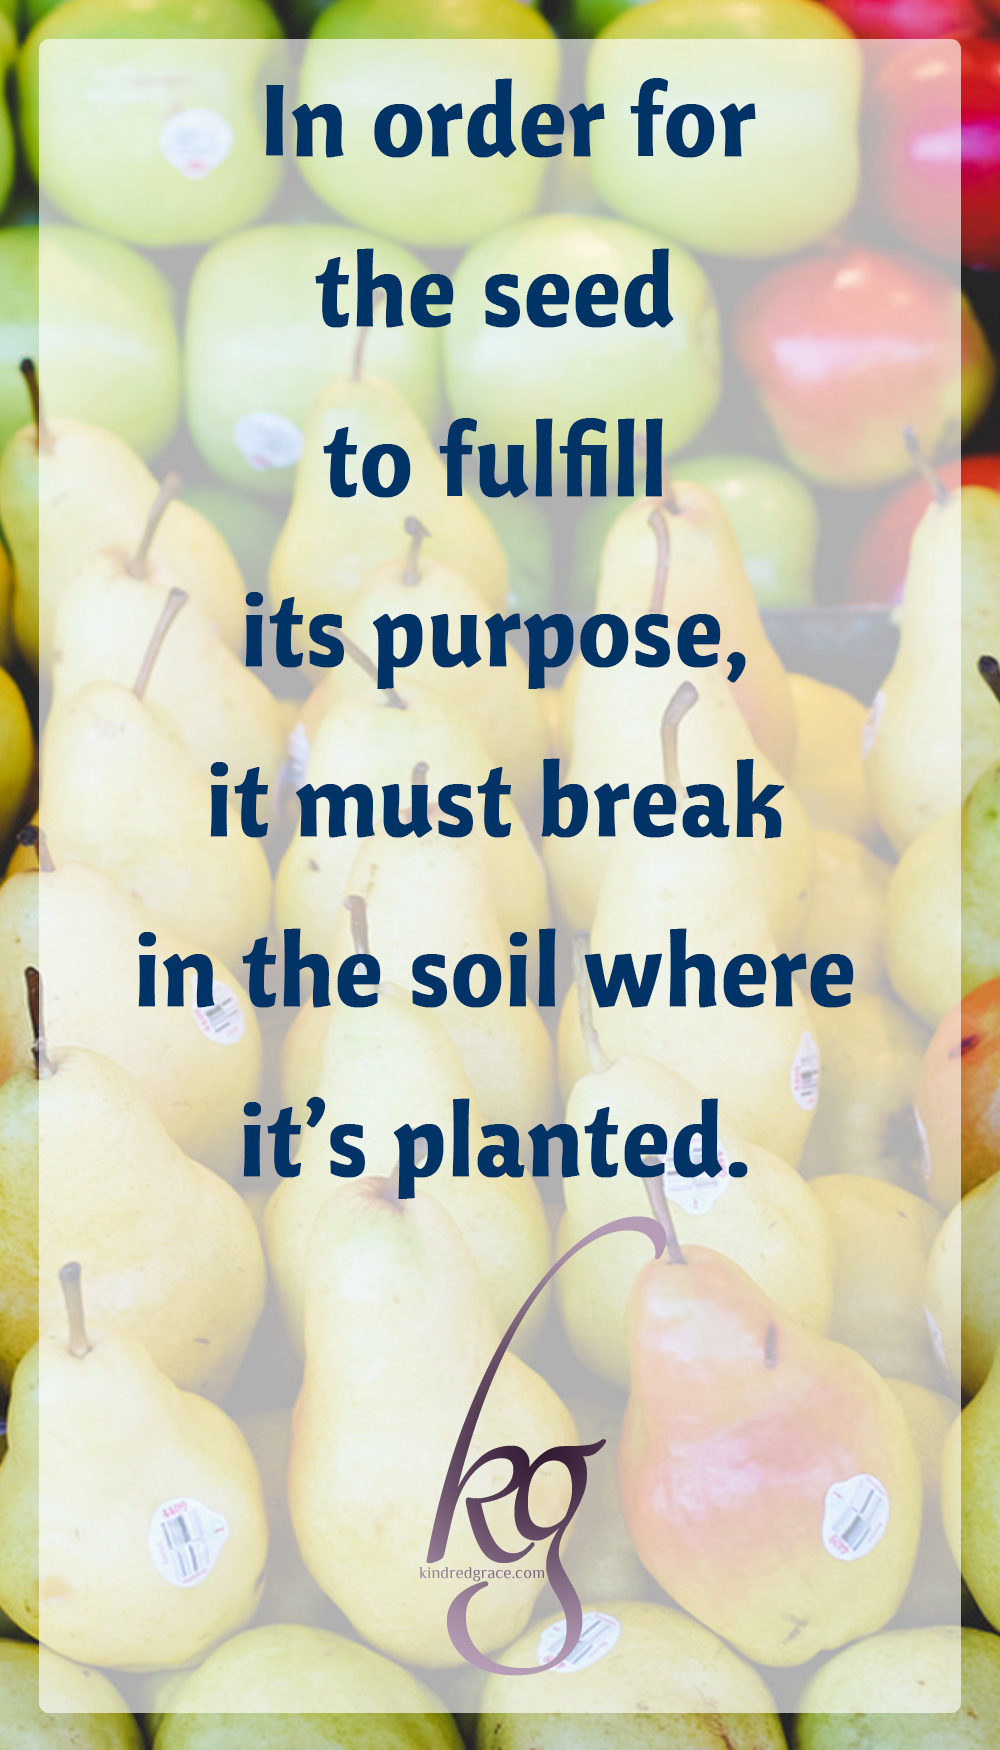 This is where all fruit begins, a simple seed.  Yet in order for the seed to fulfill its purpose, it must break in the soil where it's planted. via @KindredGrace